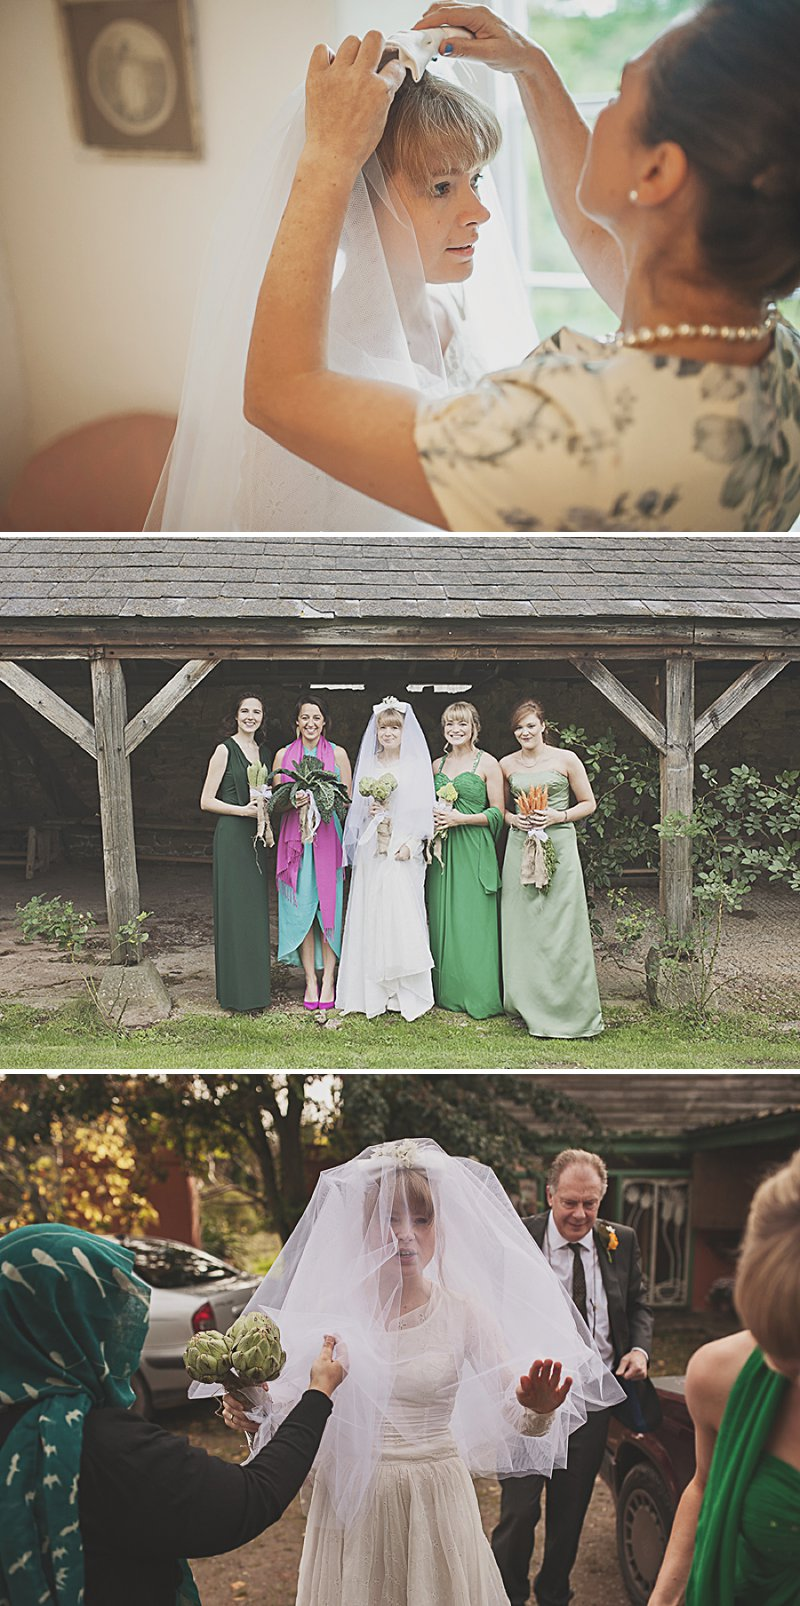 A DIY Wedding with homemade flowers, flamingo art, a polytunnel ceremony, apples, pumpkins, vintage dress and suit and vegetable bouquets.  Apple sharing ceremony at home with photography by Camilla Rosa_0004